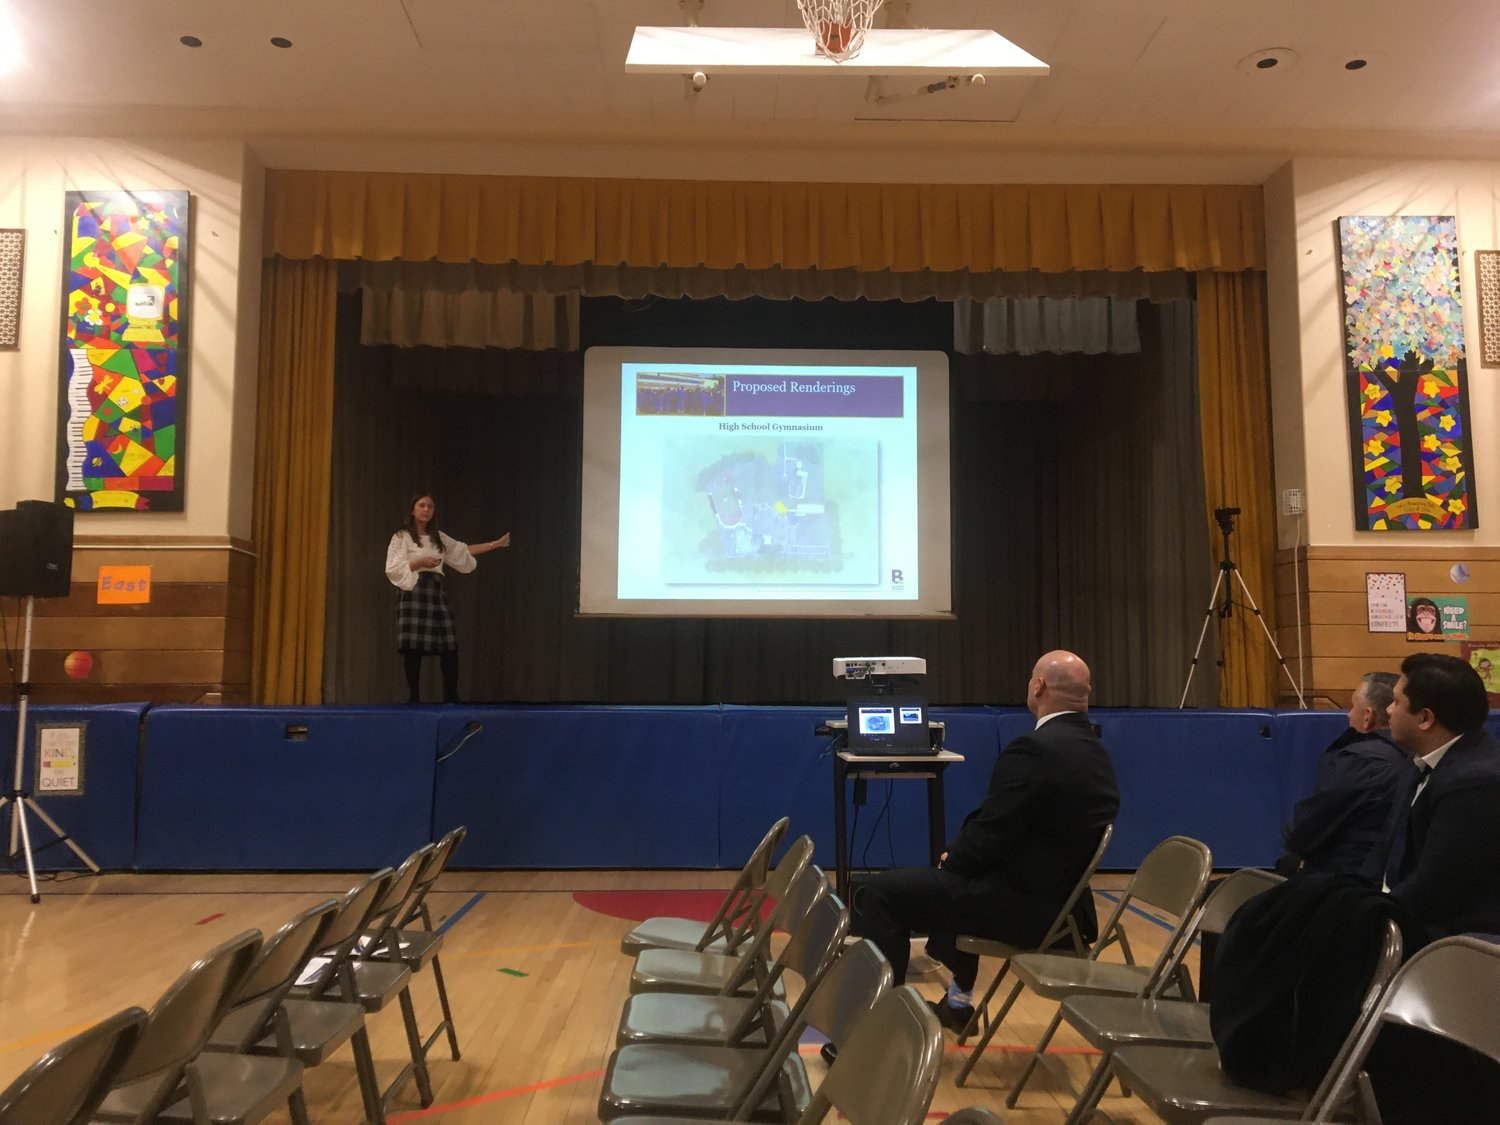 Schools Superintendent Dr. Shari Camhi presented the plans for Innovation 2020 at a Jan. 8 school board meeting at Plaza Elementary School.